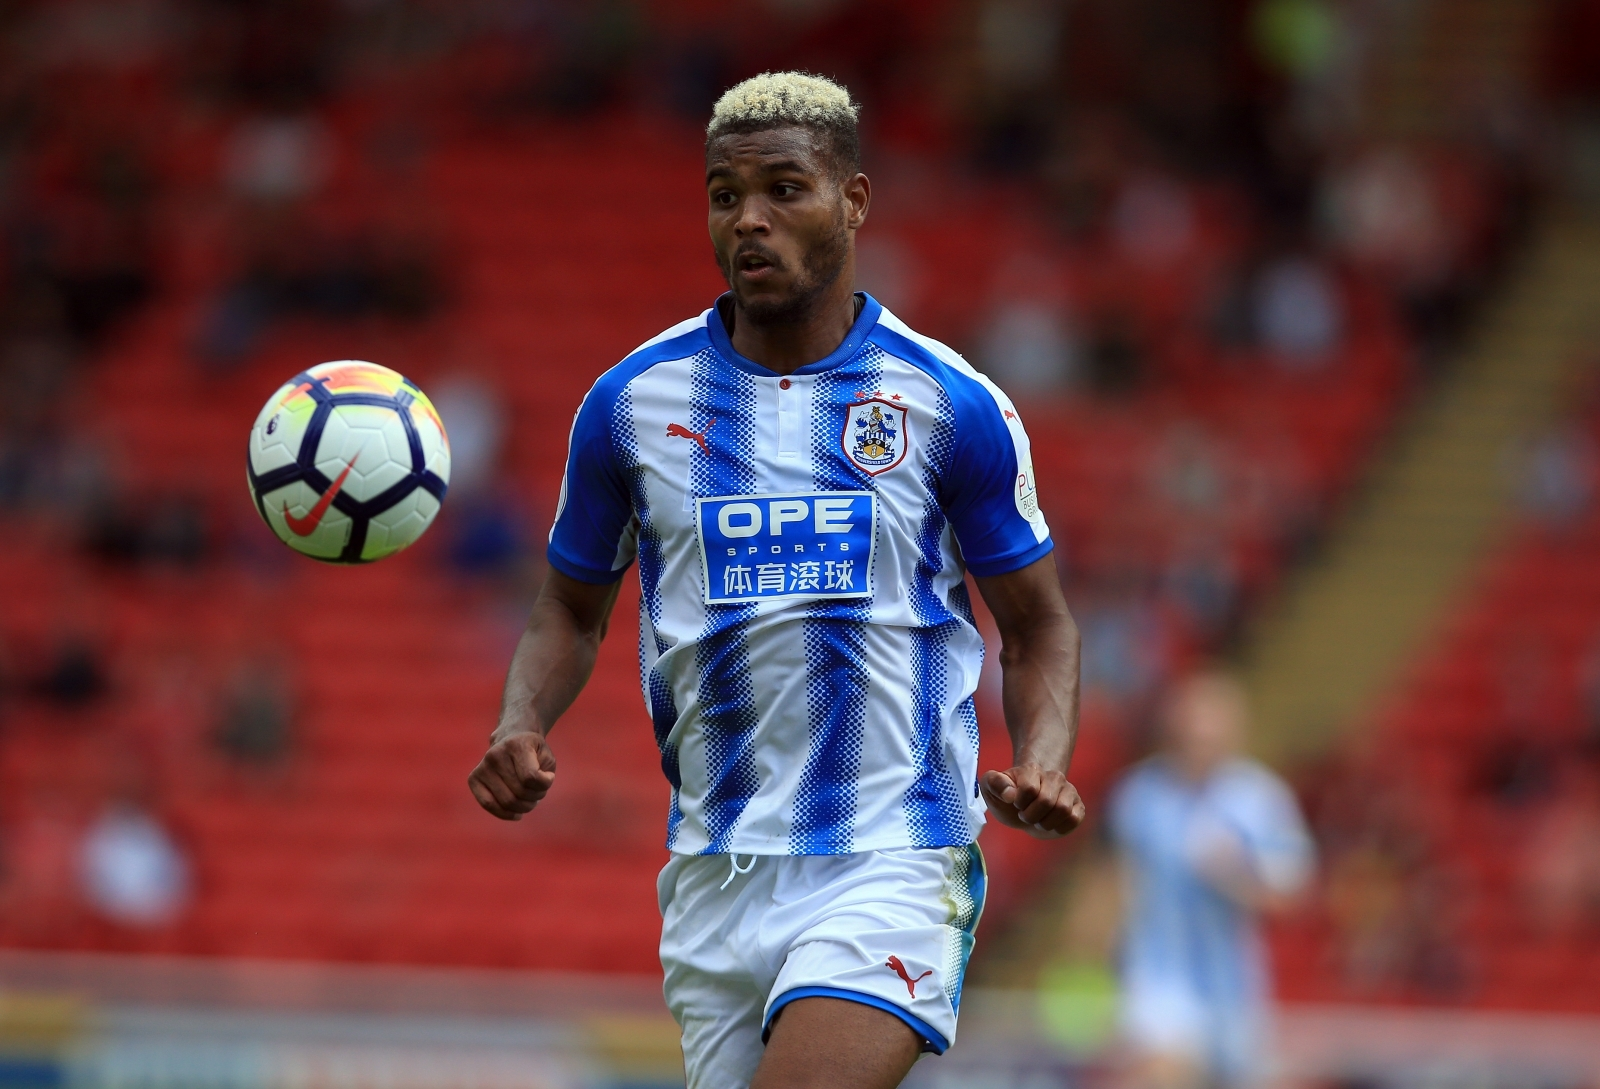 Double delight for Steve Mounie as Huddersfield celebrate flawless  start